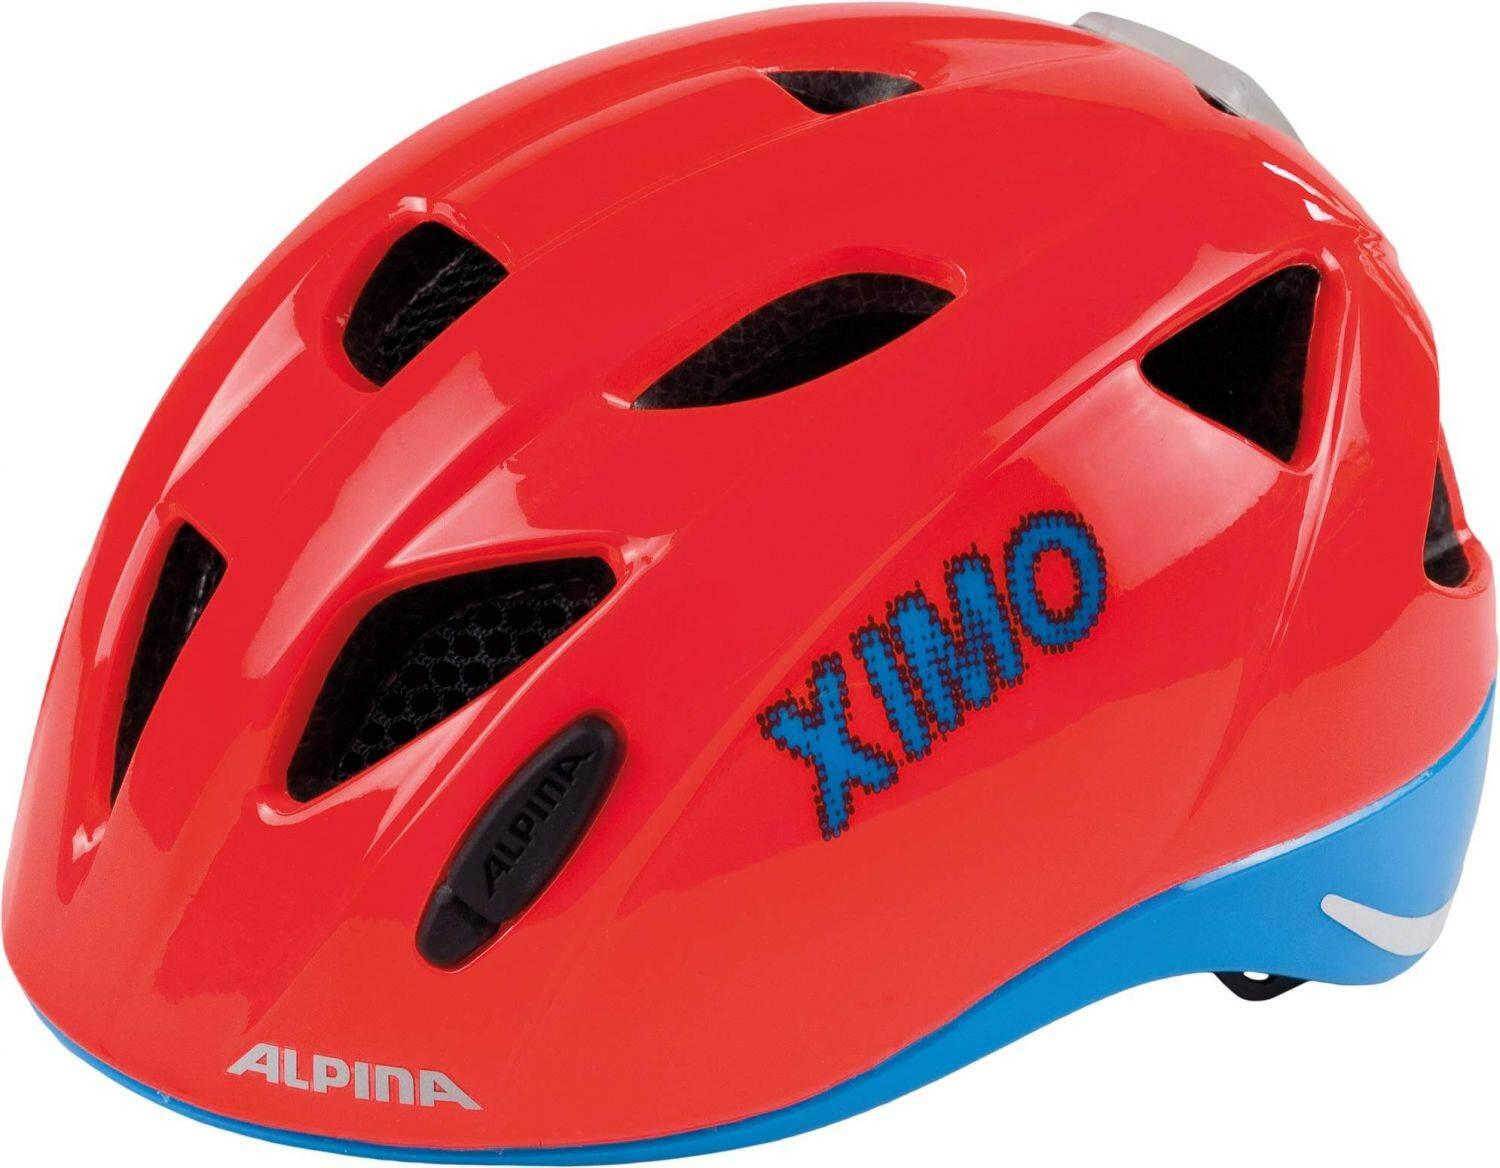 alpina-ximo-flash-kinderfahrradhelm-gr-ouml-szlig-e-45-49-cm-52-neon-red-blue-